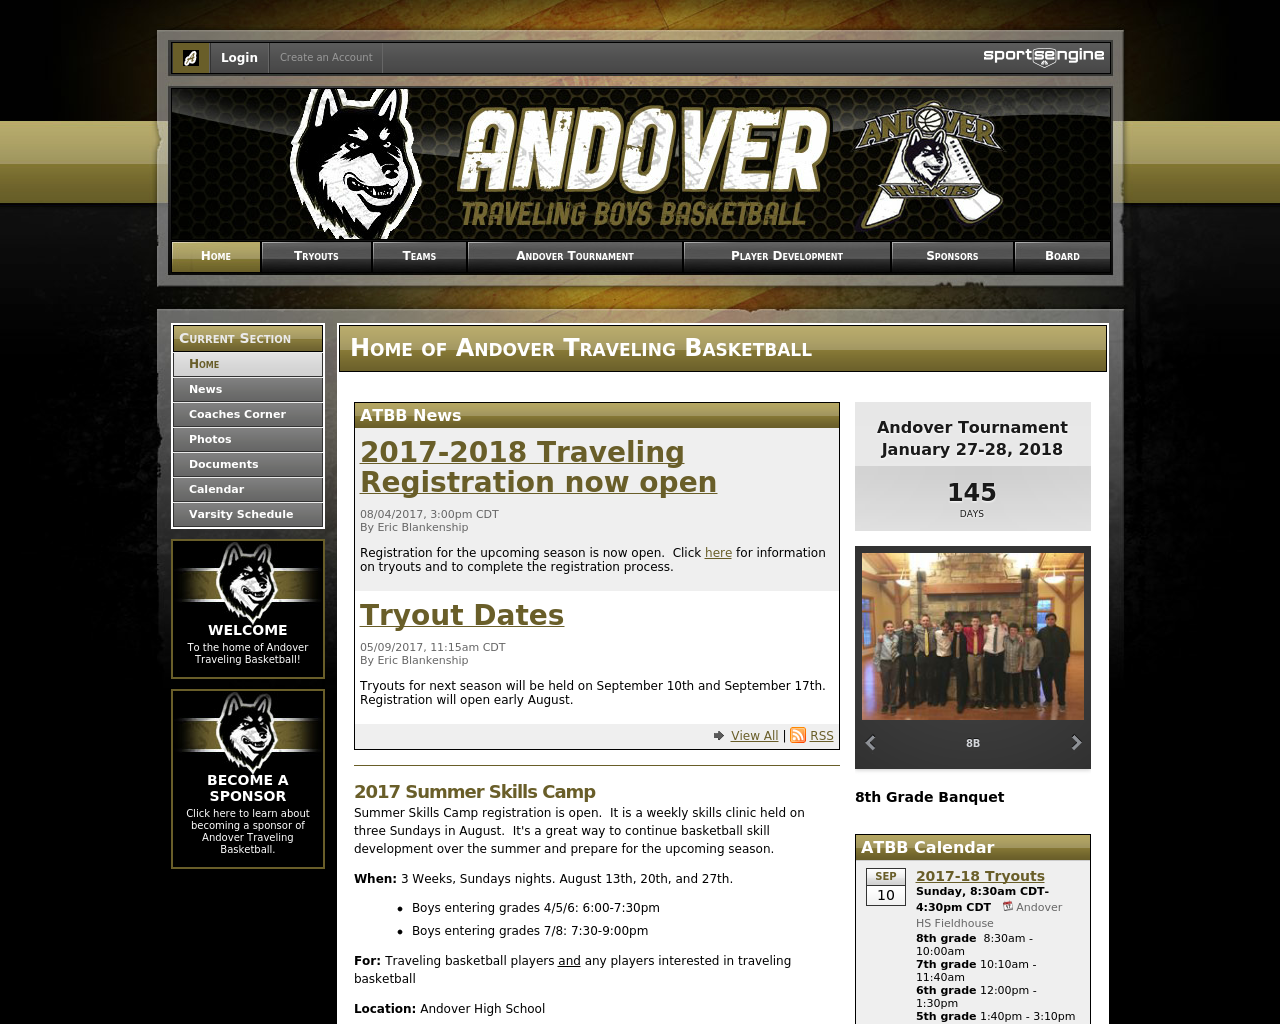 Andover-Traveling-Boys-Basketball-Advertising-Reviews-Pricing